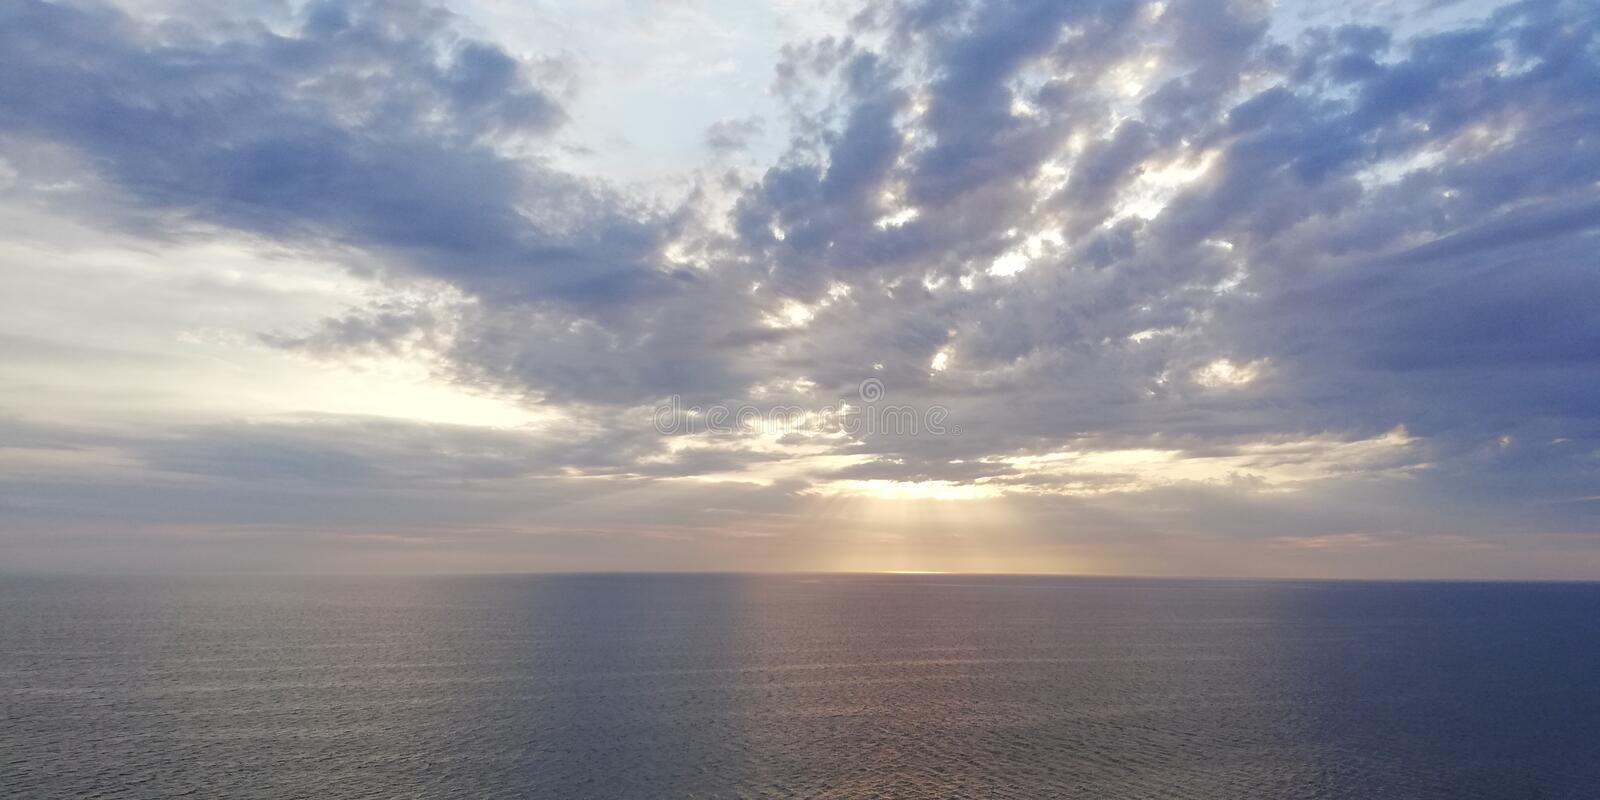 Autumn sunset seascape. Clouds, sea and setting sun. Background. The autumn dark sea is illuminated by the setting sun, peeking through dense blue-gray clouds royalty free stock photo